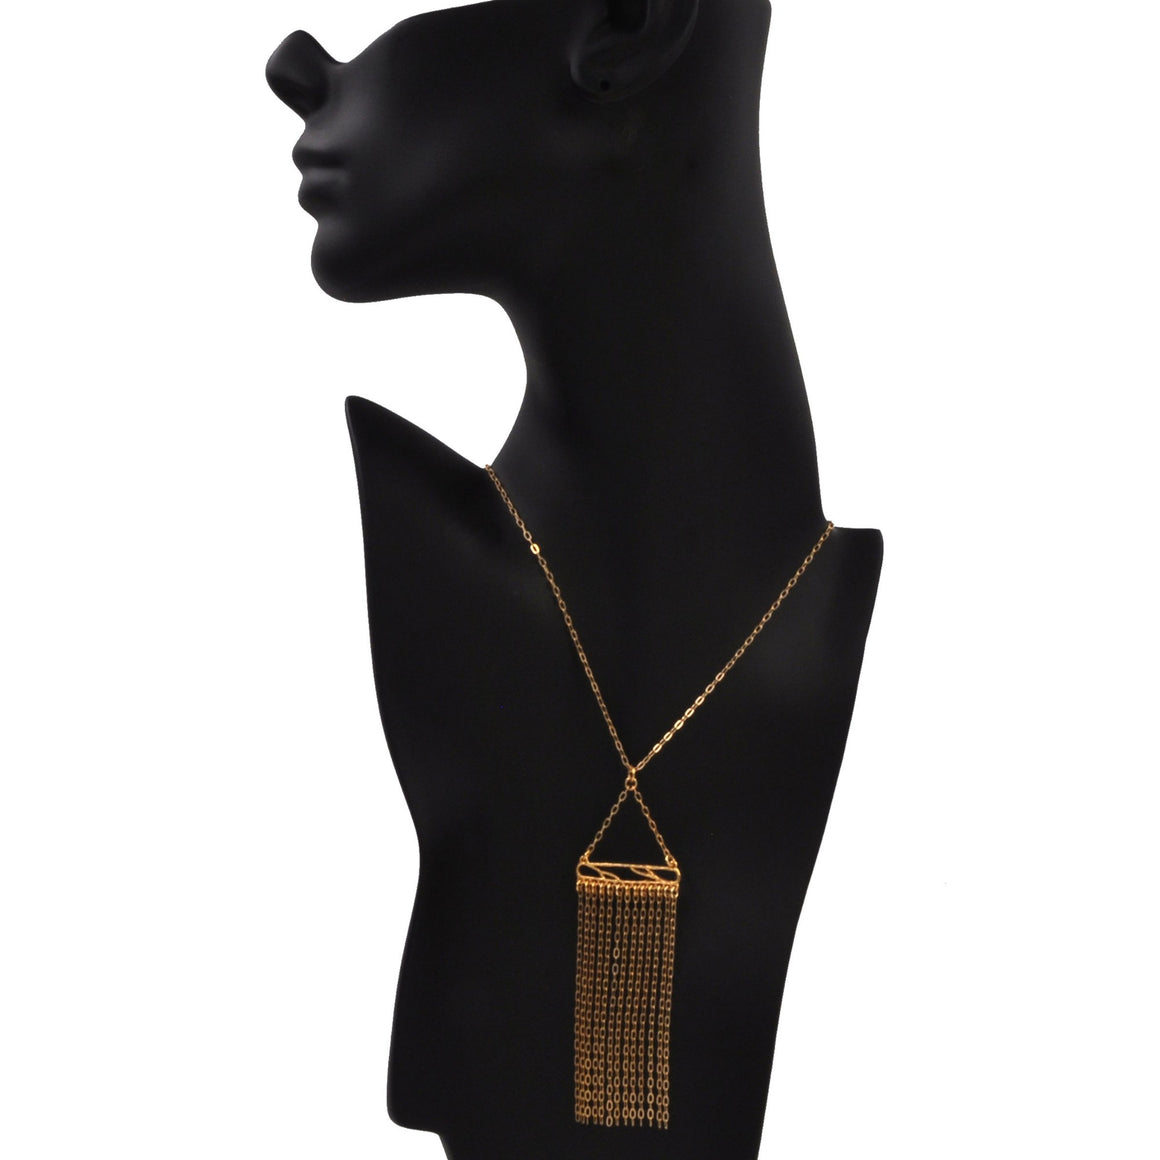 Glamorous Fringe Statement Necklace - 24K Gold Plated